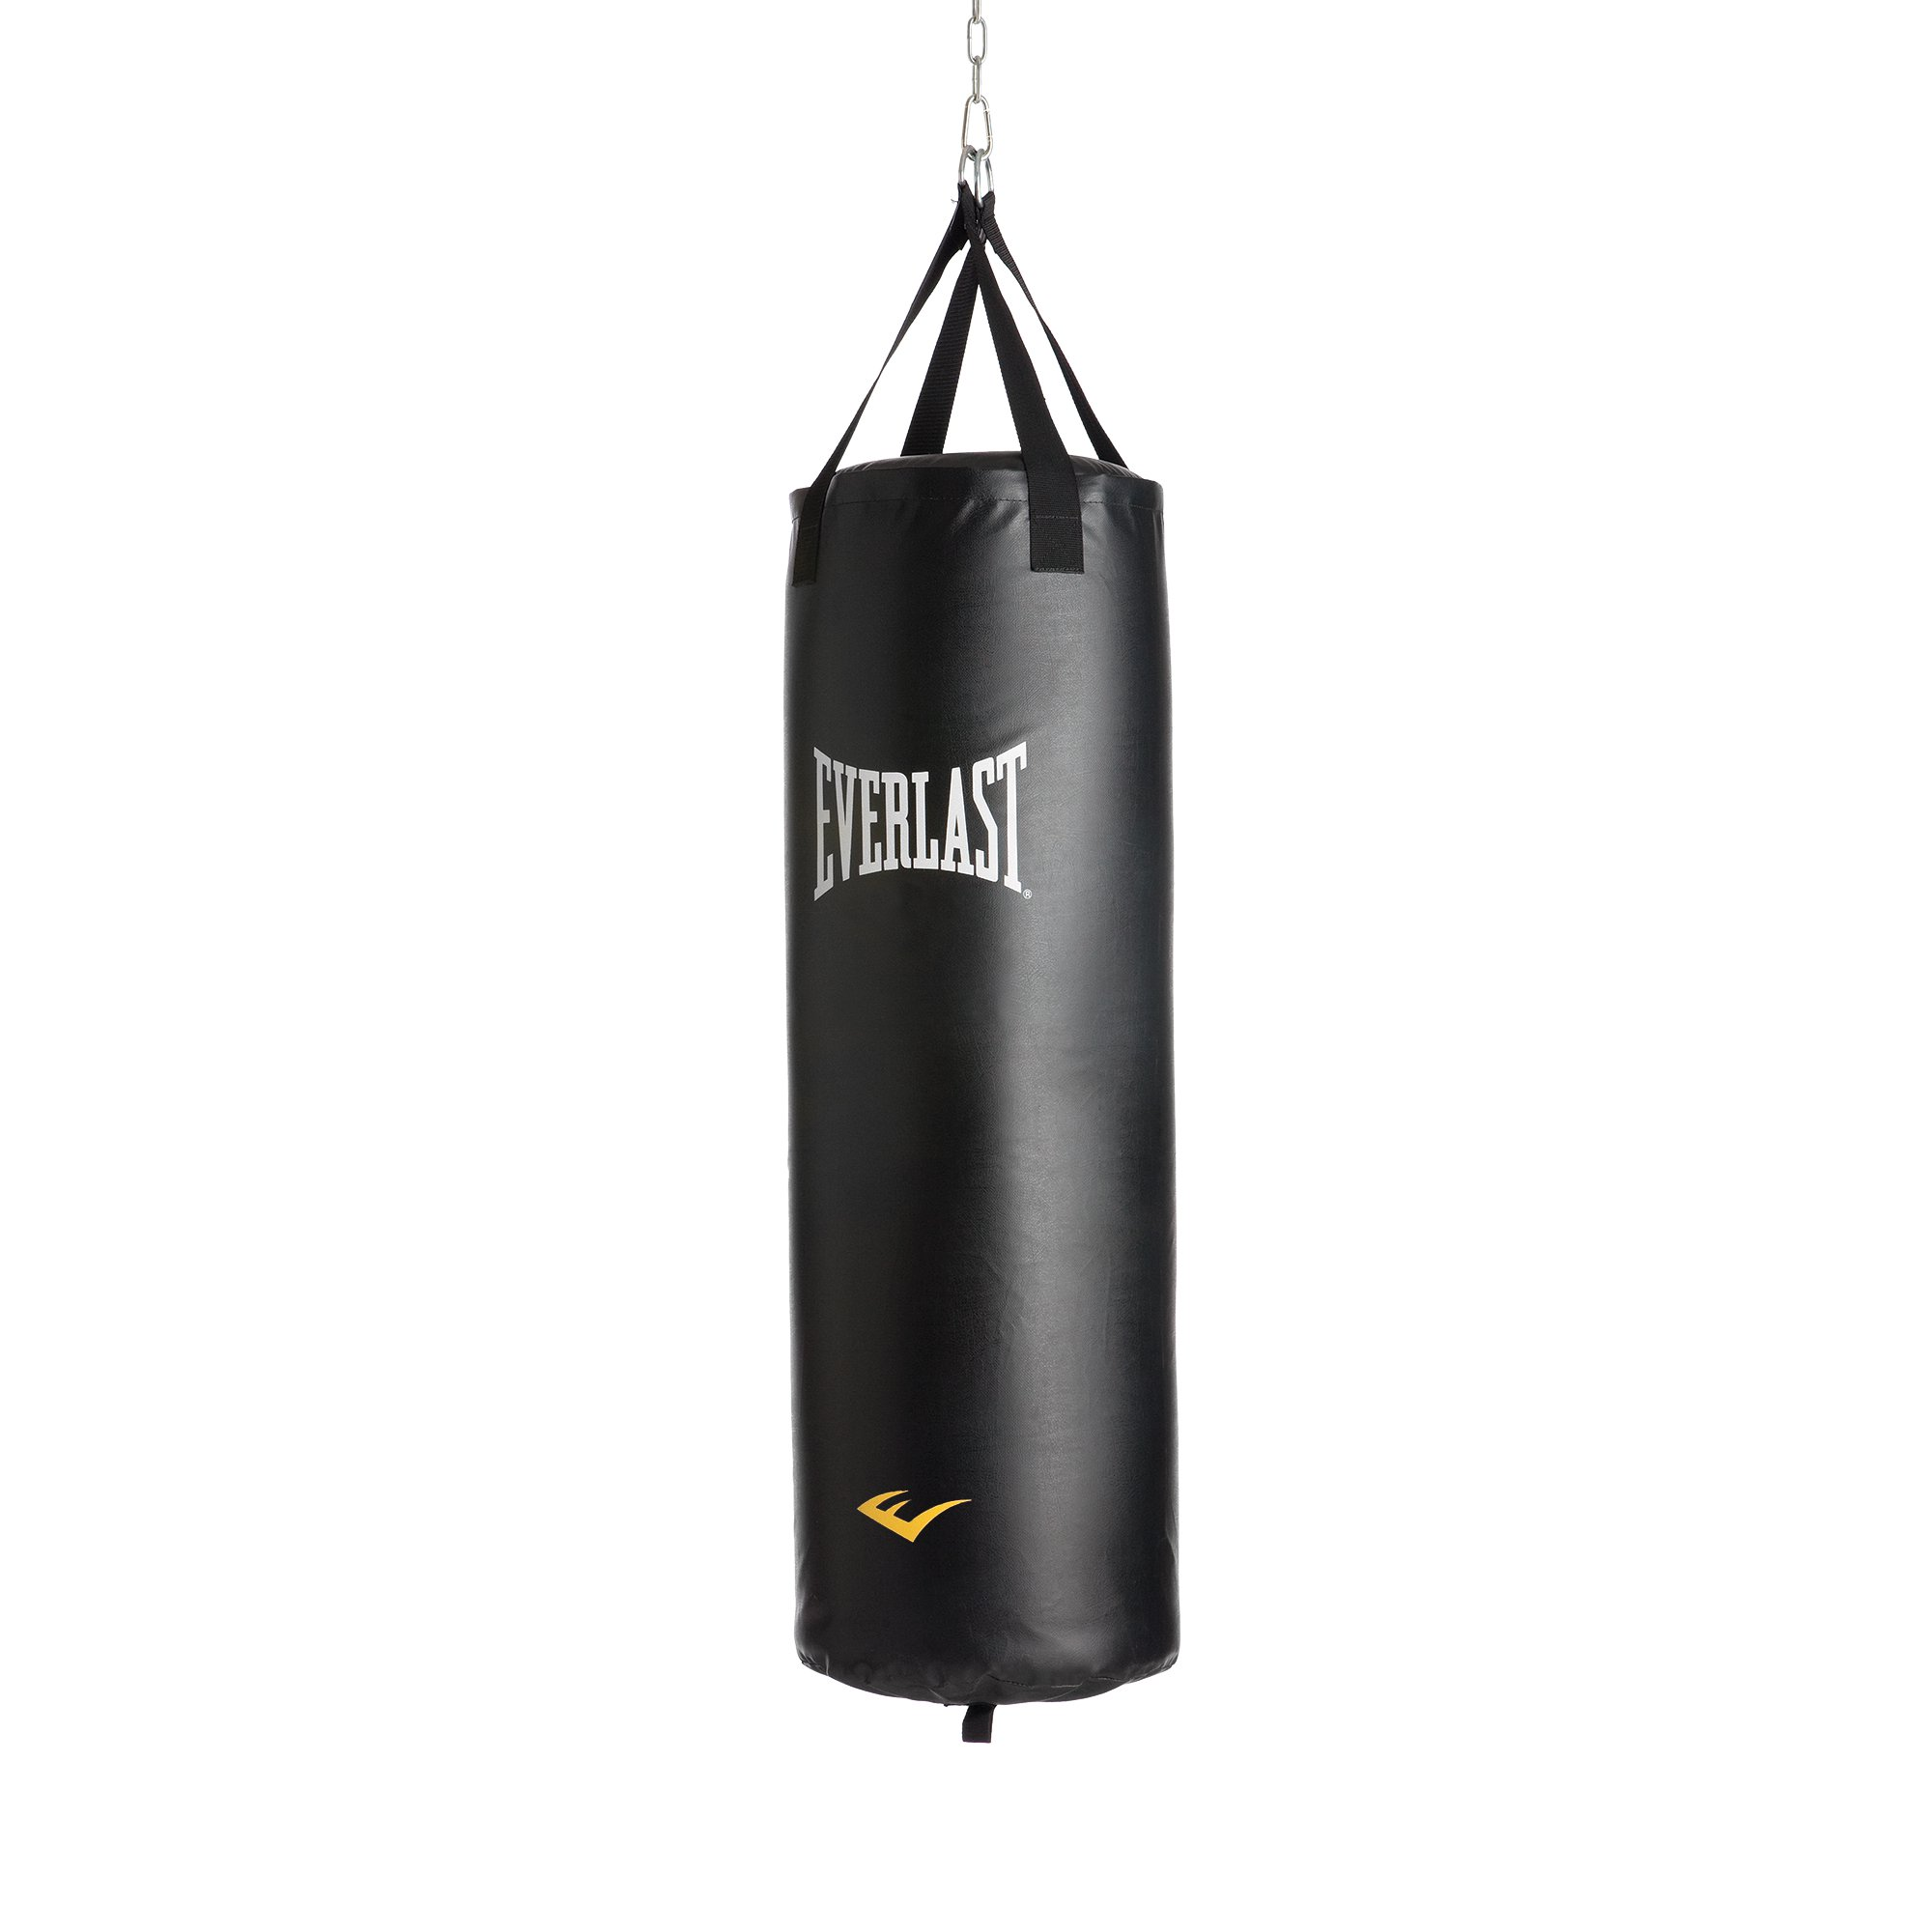 Everlast 70lb PLATINUM Heavy Bag /& Century Stand Kit Boxing MMA Kickboxing